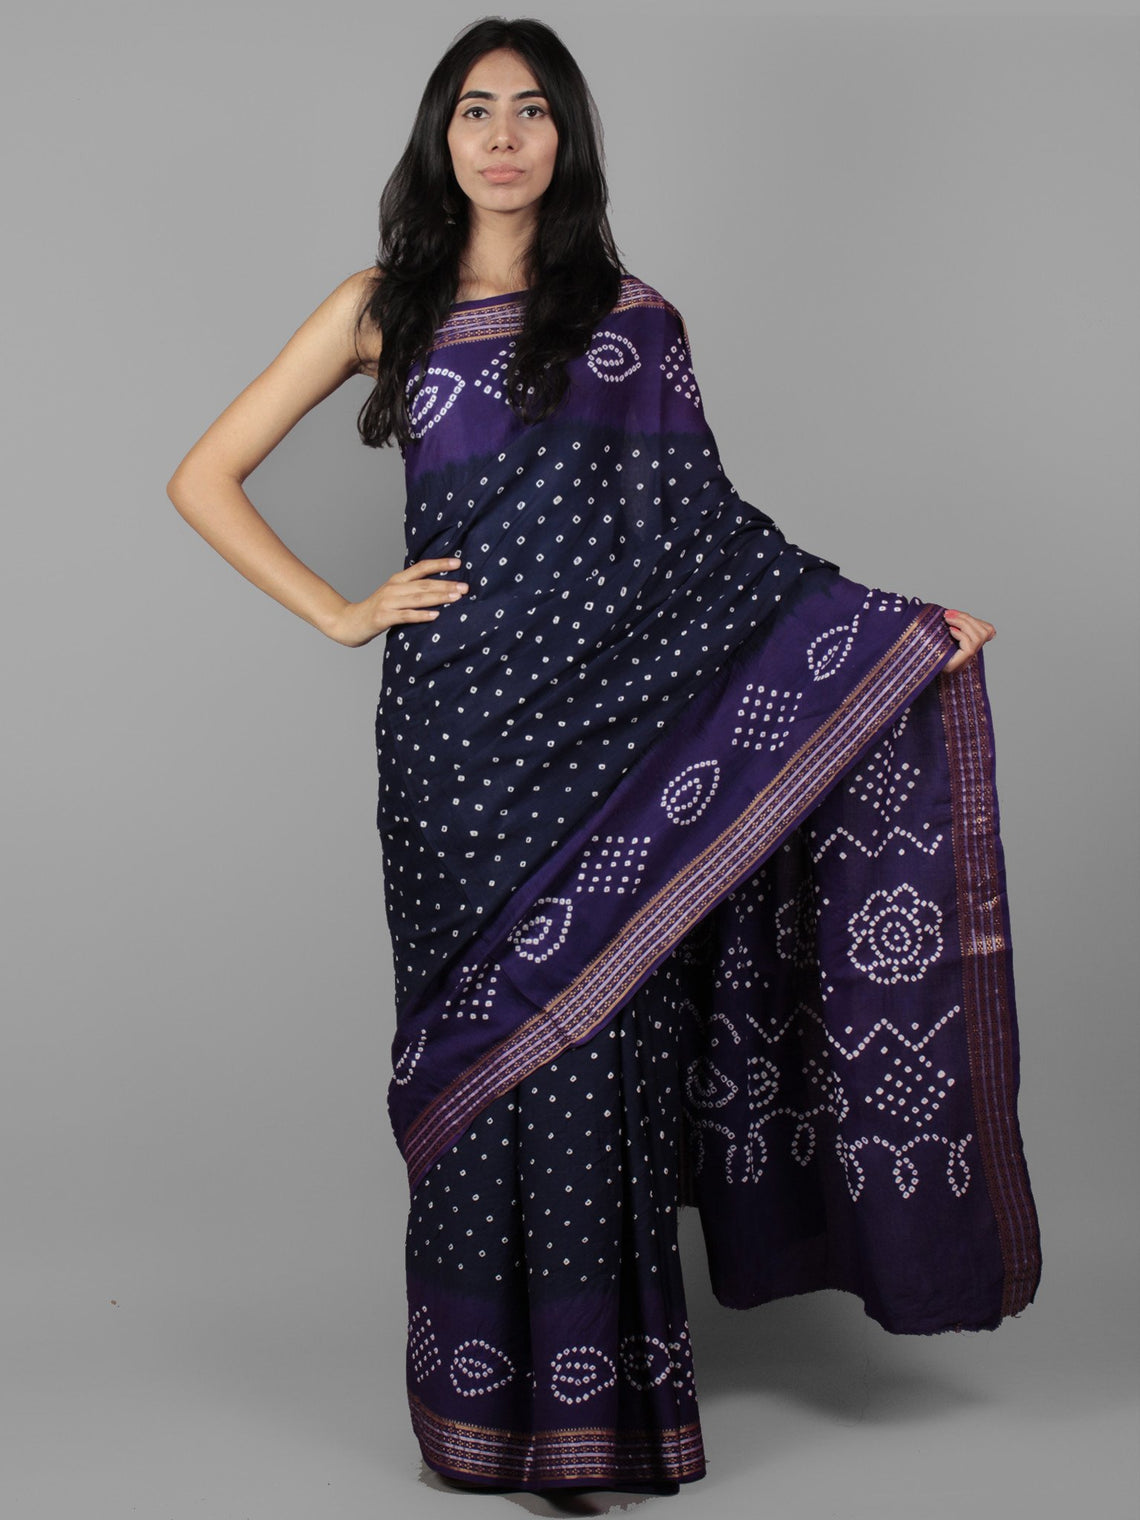 Royal Blue Purple Ivory Hand Tie & Dye Bandhej Glace Cotton Saree With Resham Border - S031701972